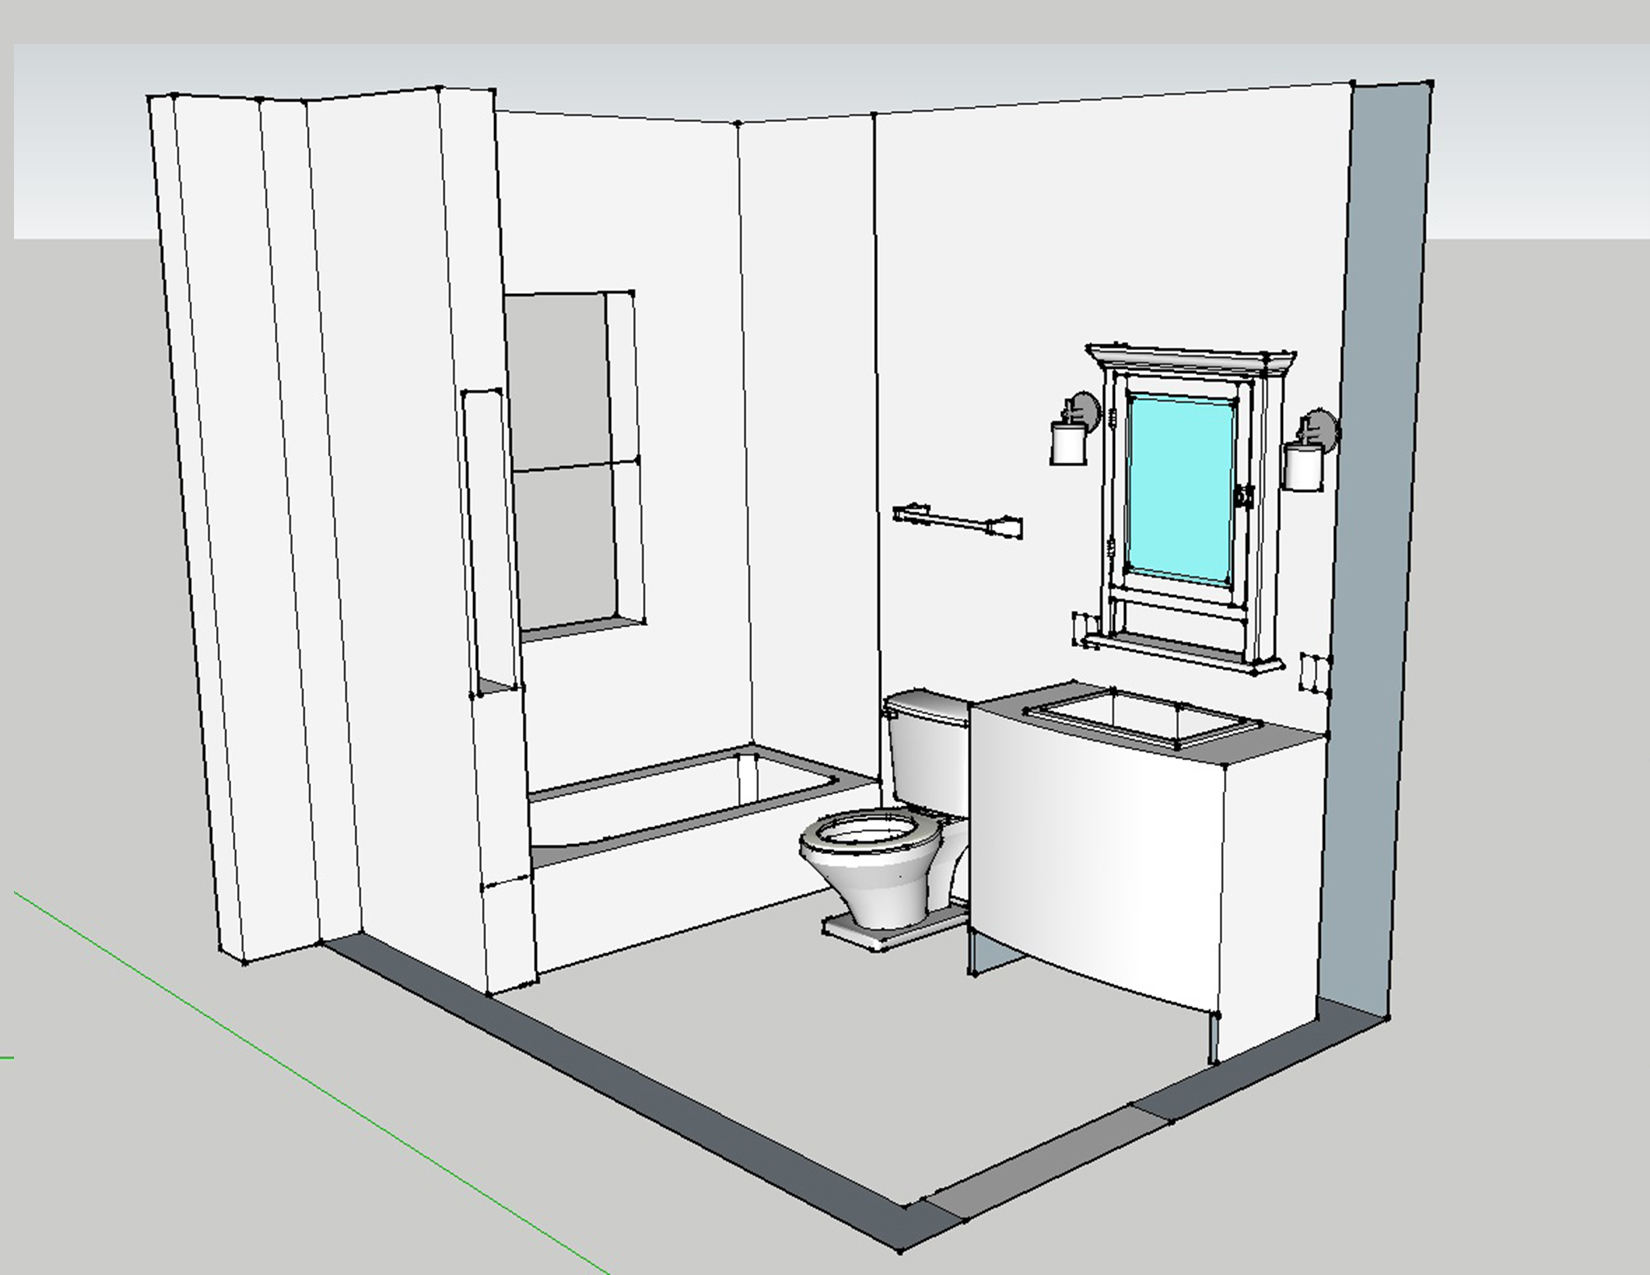 Sketchup up and adam ries for Bathroom designs drawing